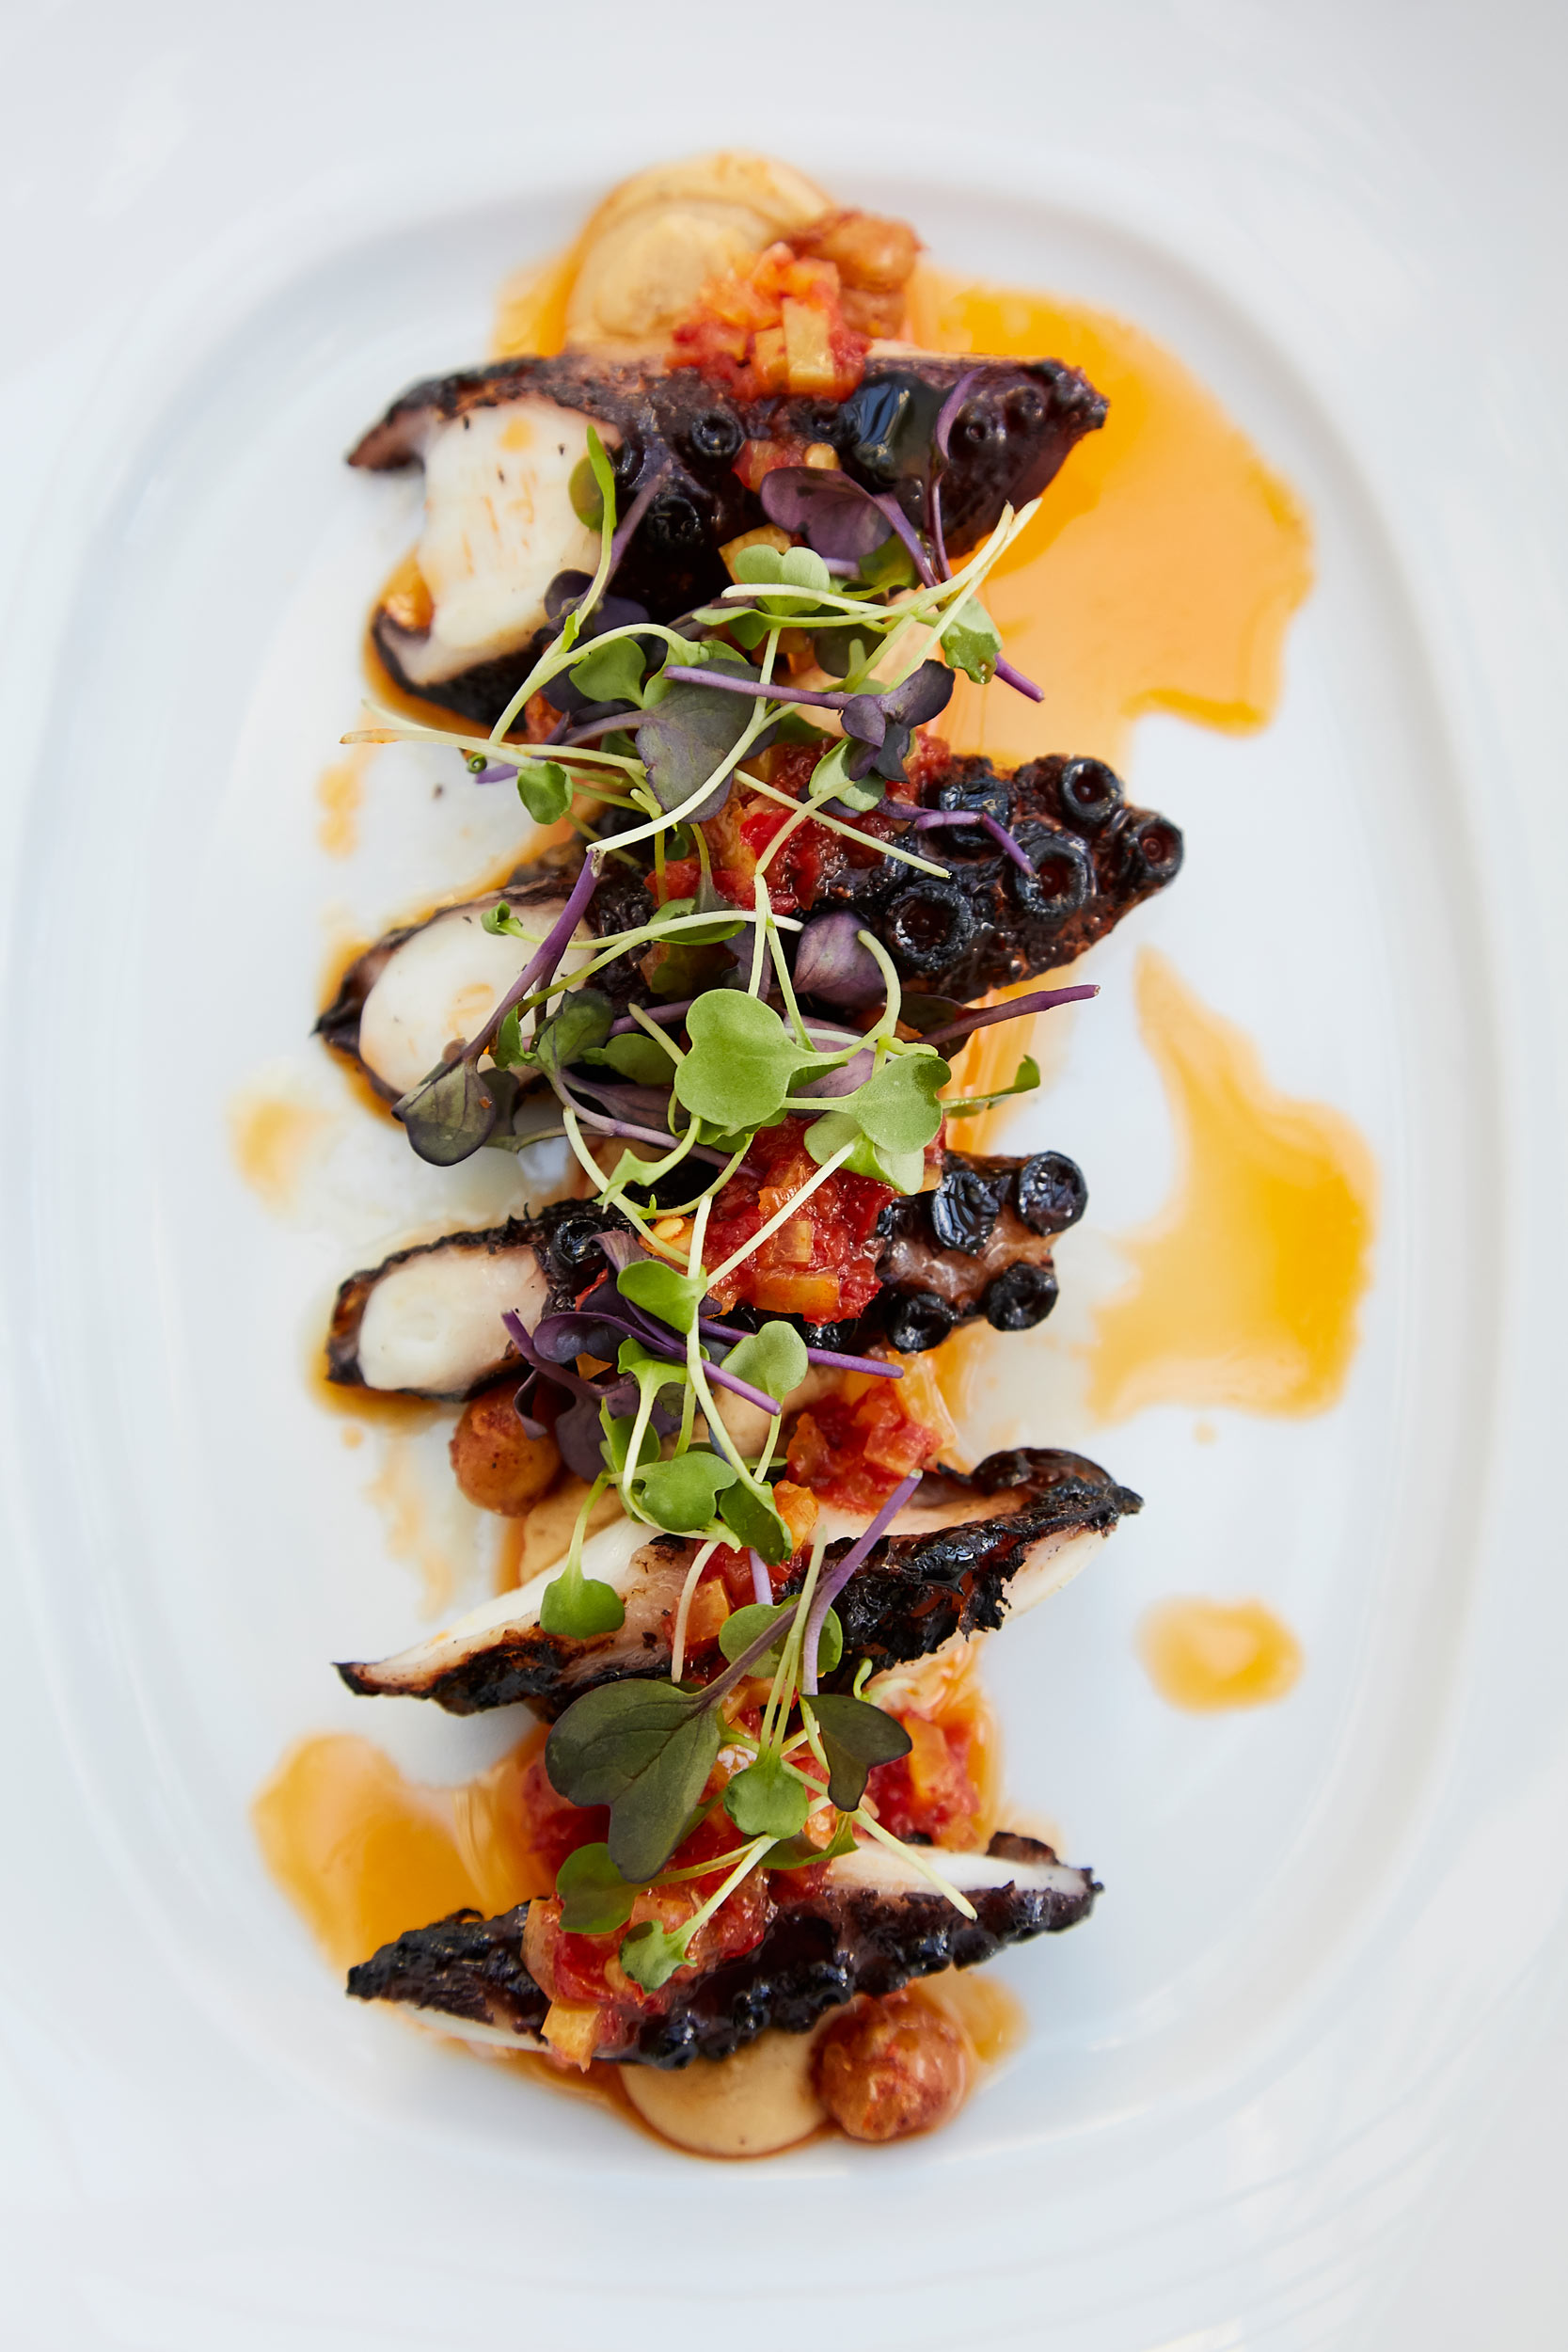 Charred Spanish Octopus photo by Chris Kessler Photography.  Chris Kessler is a freelance Photographer based in Milwaukee Wisconsin. Specializing in Food photography and portraiture.